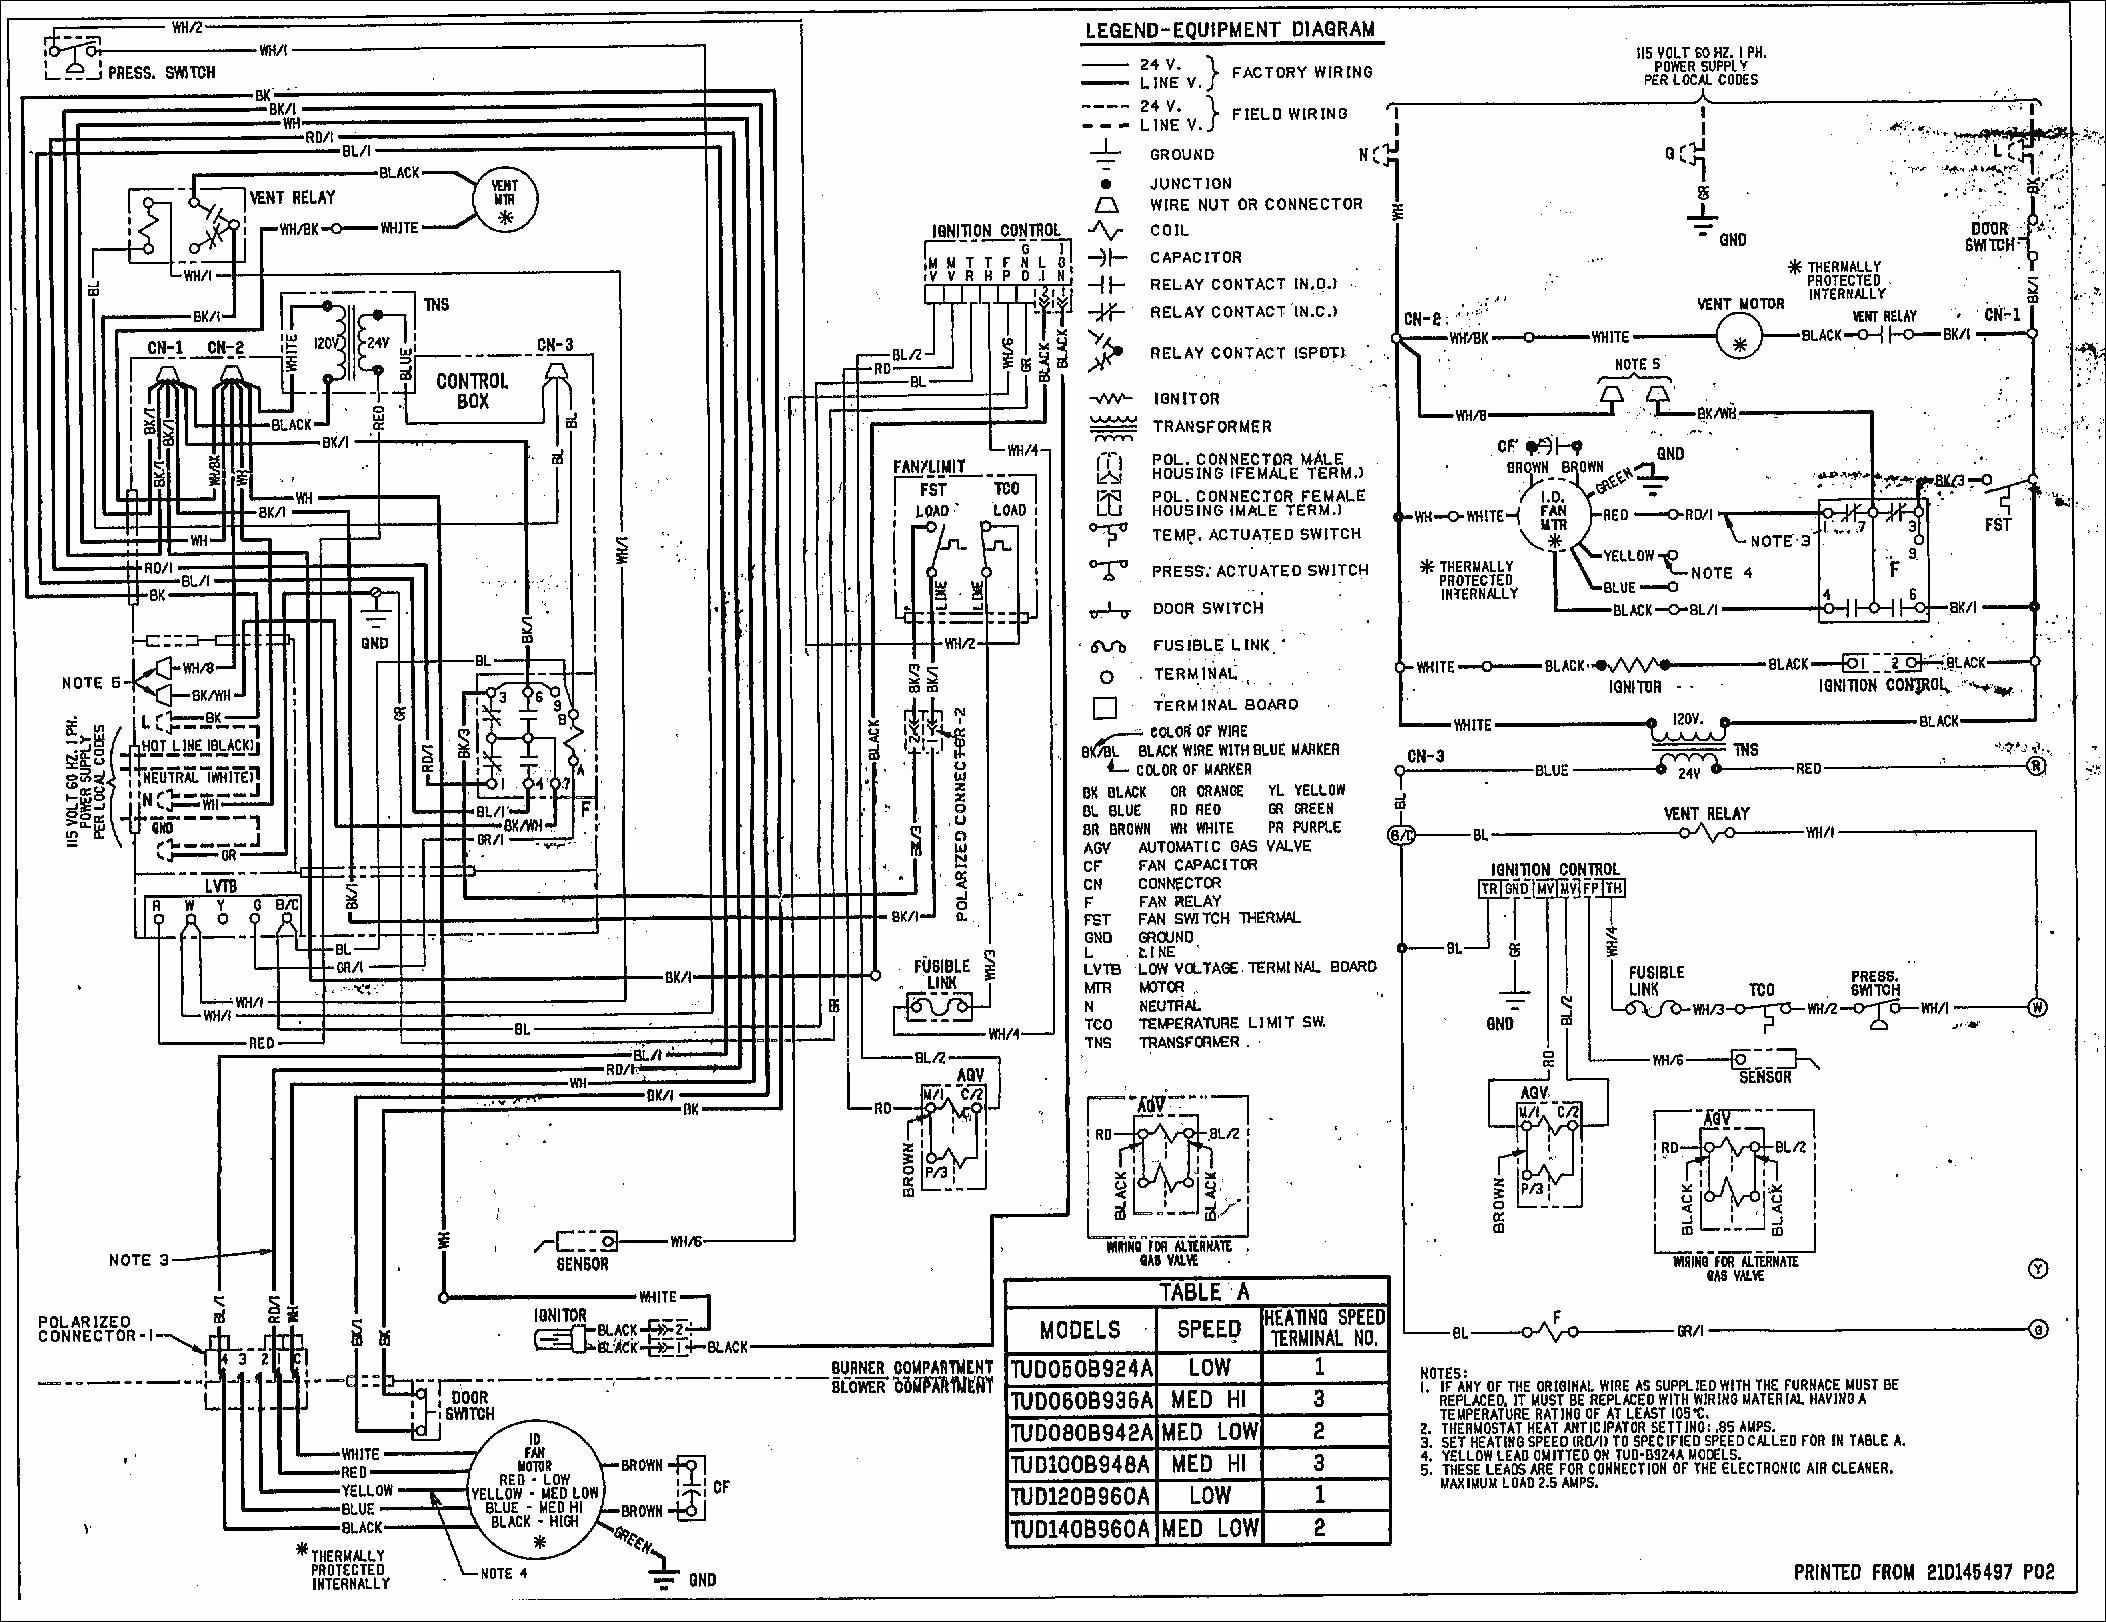 intertherm e2eb 015ha wiring diagram | free wiring diagram nordyne control board wiring diagram nordyne e2eb 012ha wiring diagram #15